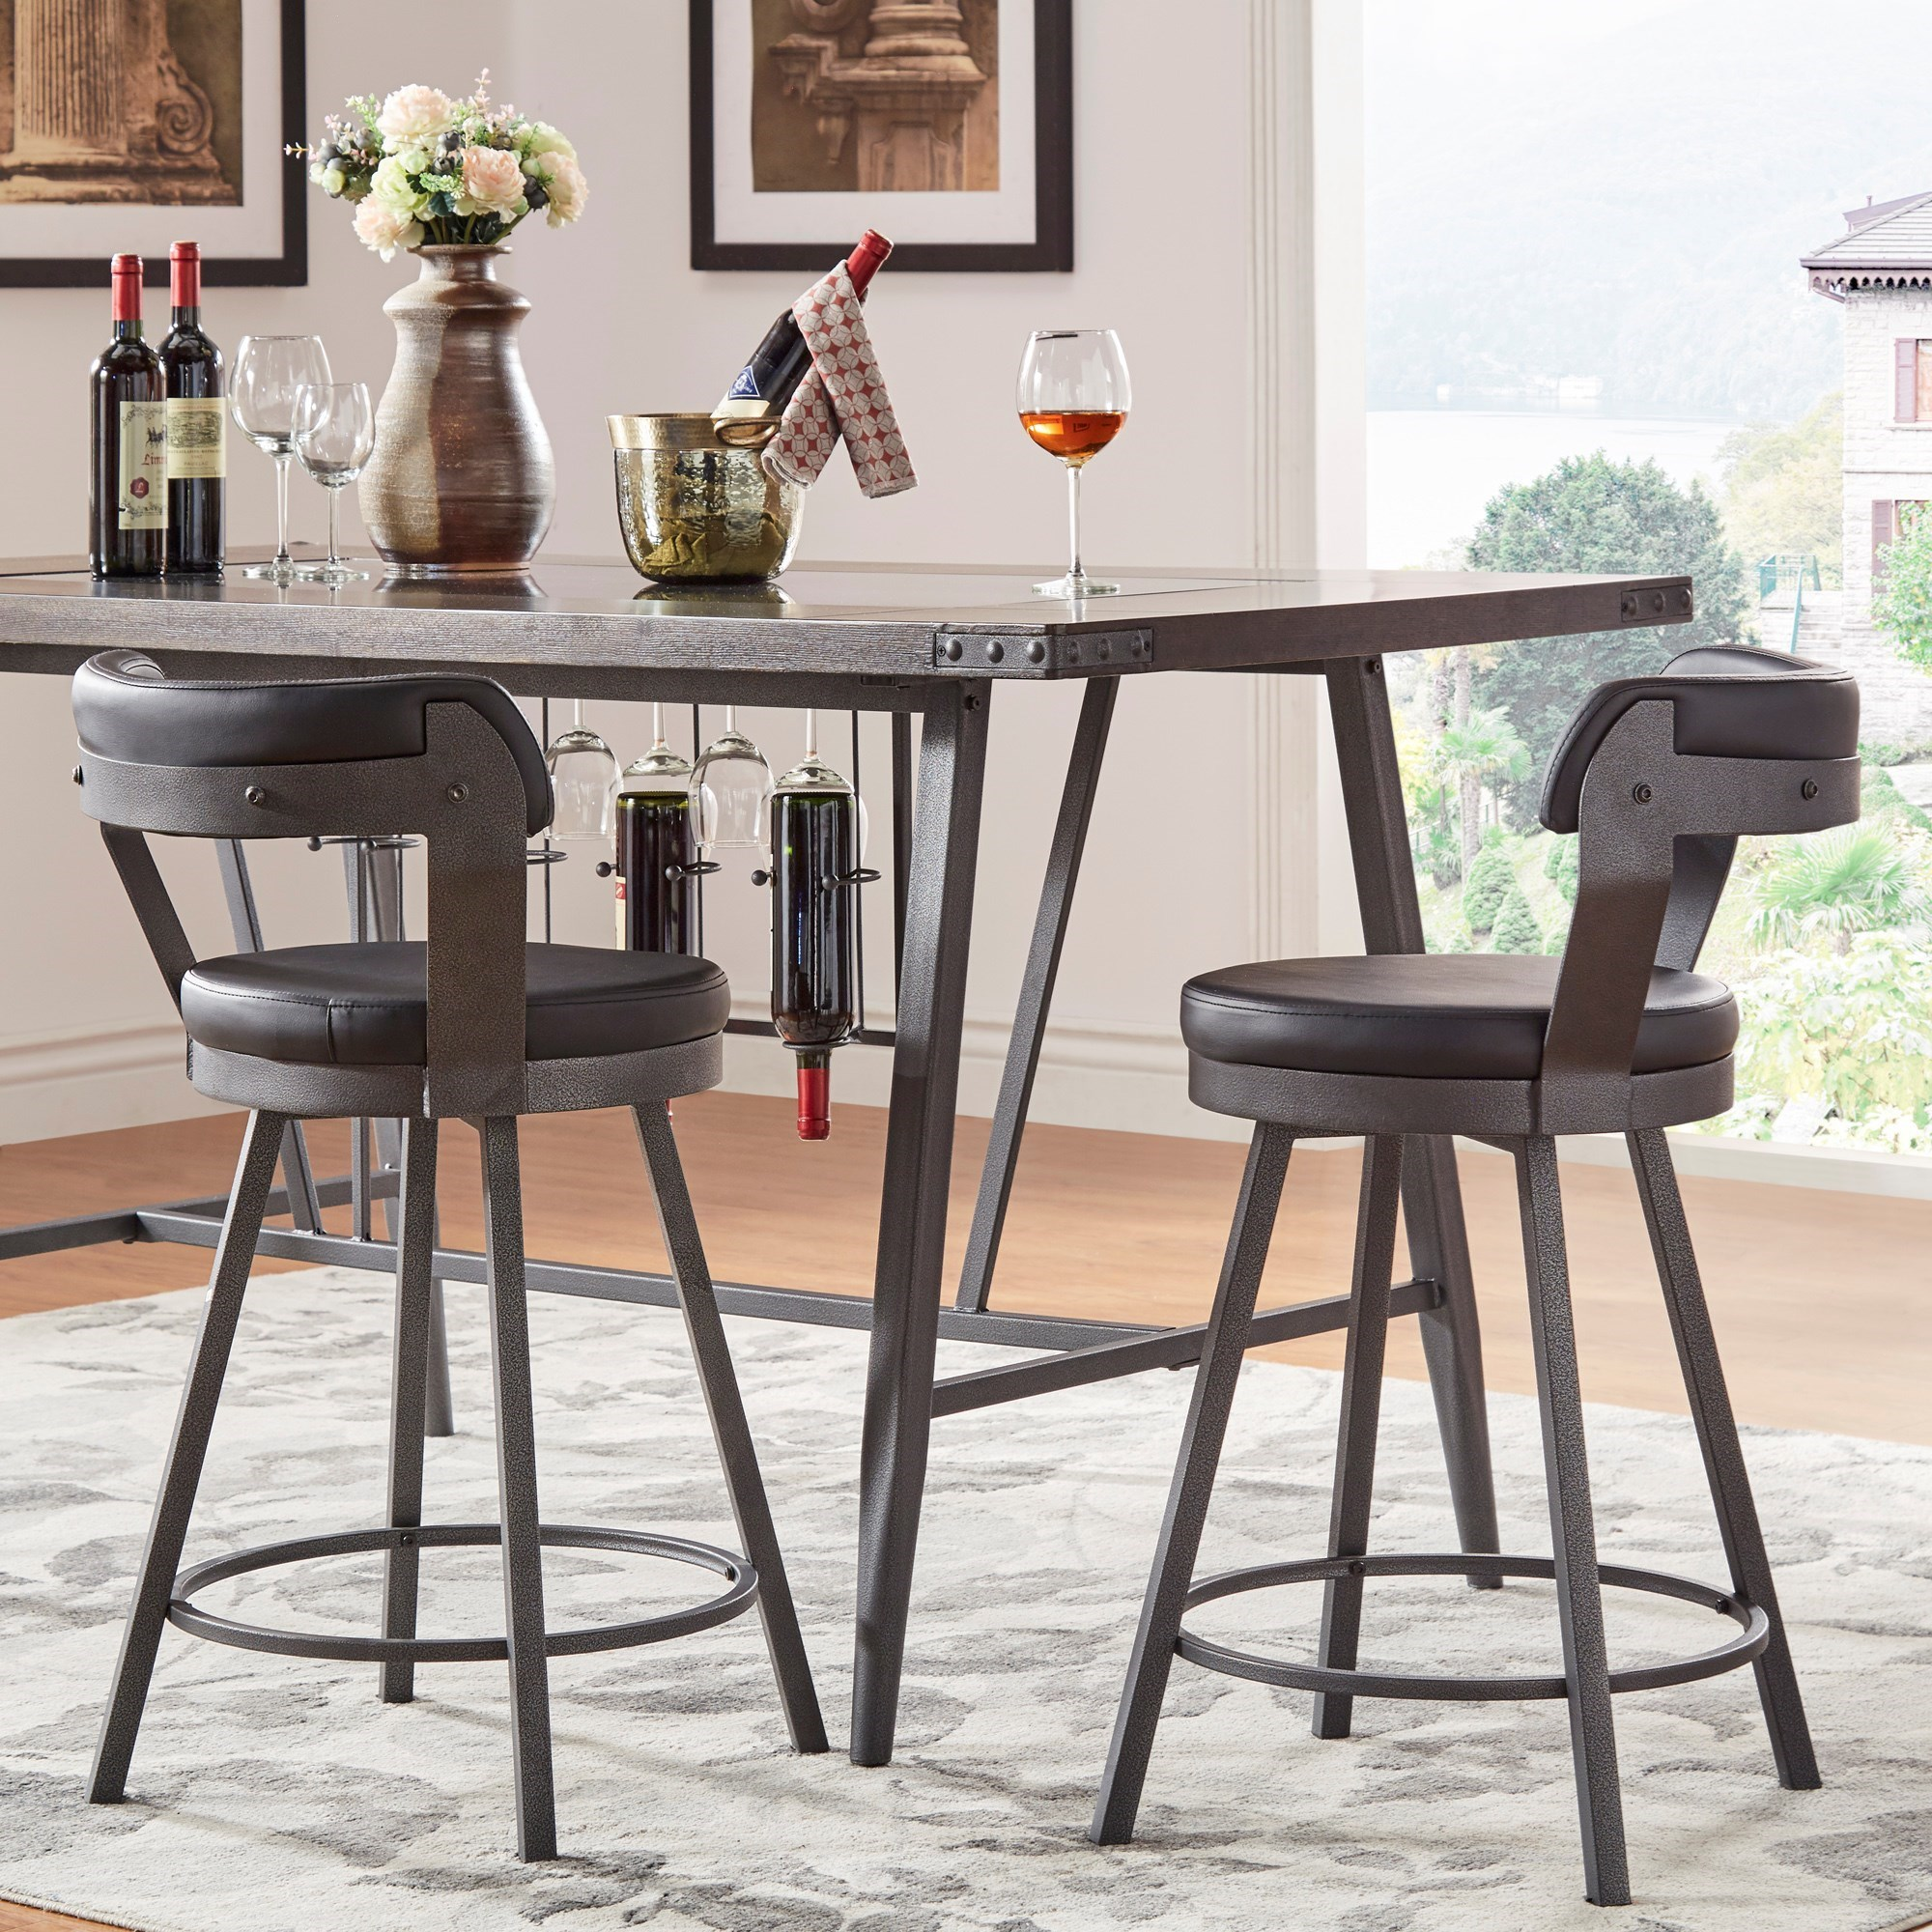 chair stool counter height contemporary accent chairs homelegance 5566 with swiveling seat